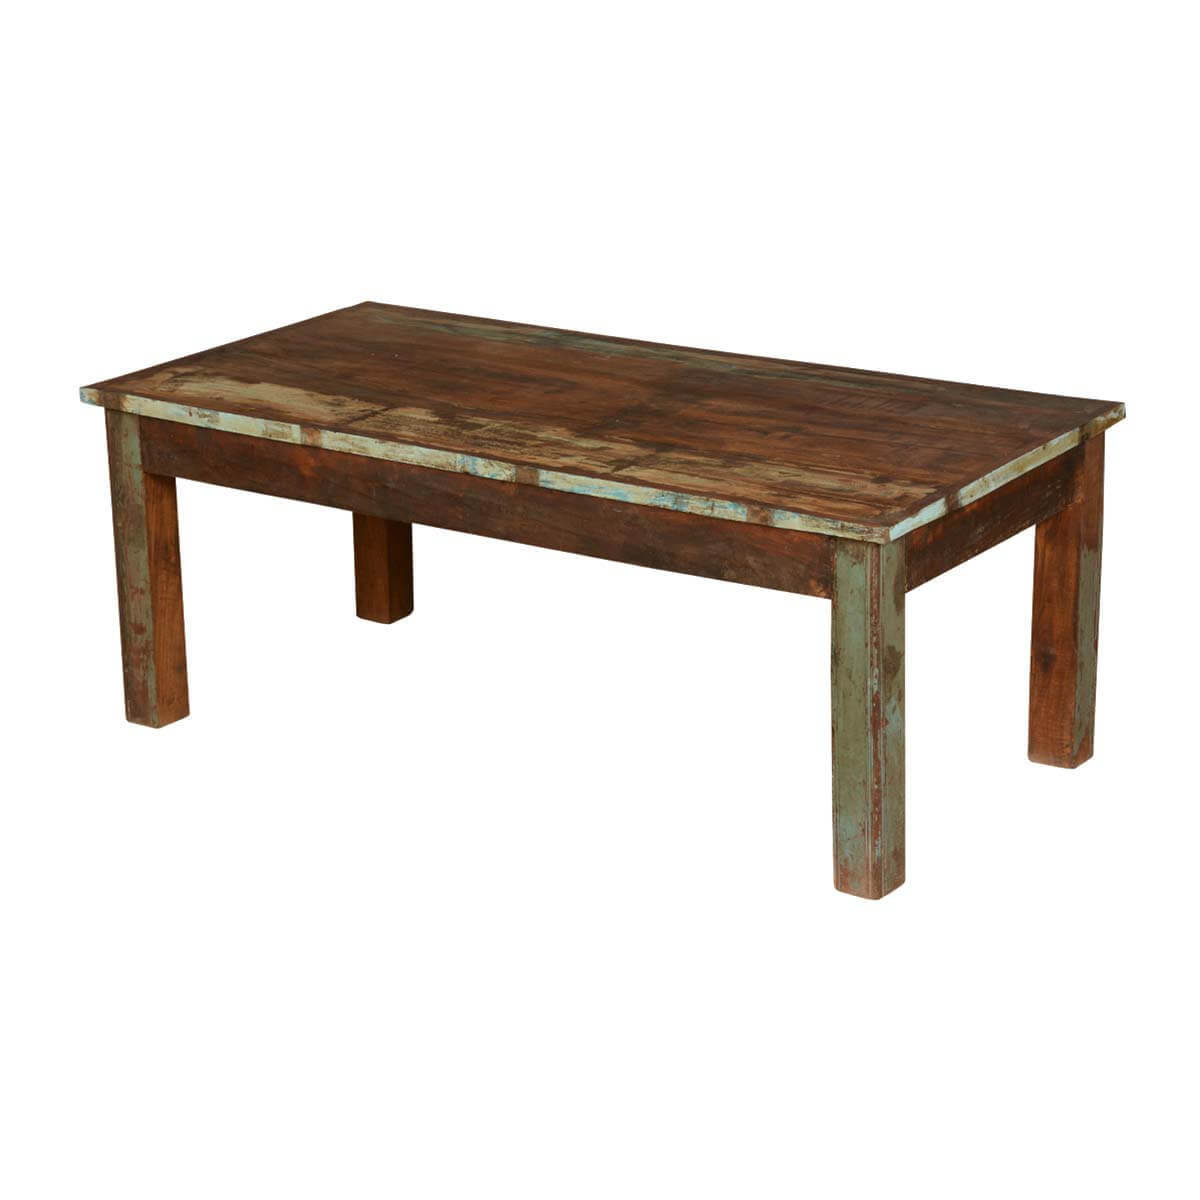 Farmhouse distressed reclaimed wood rustic coffee table for Rustic coffee table